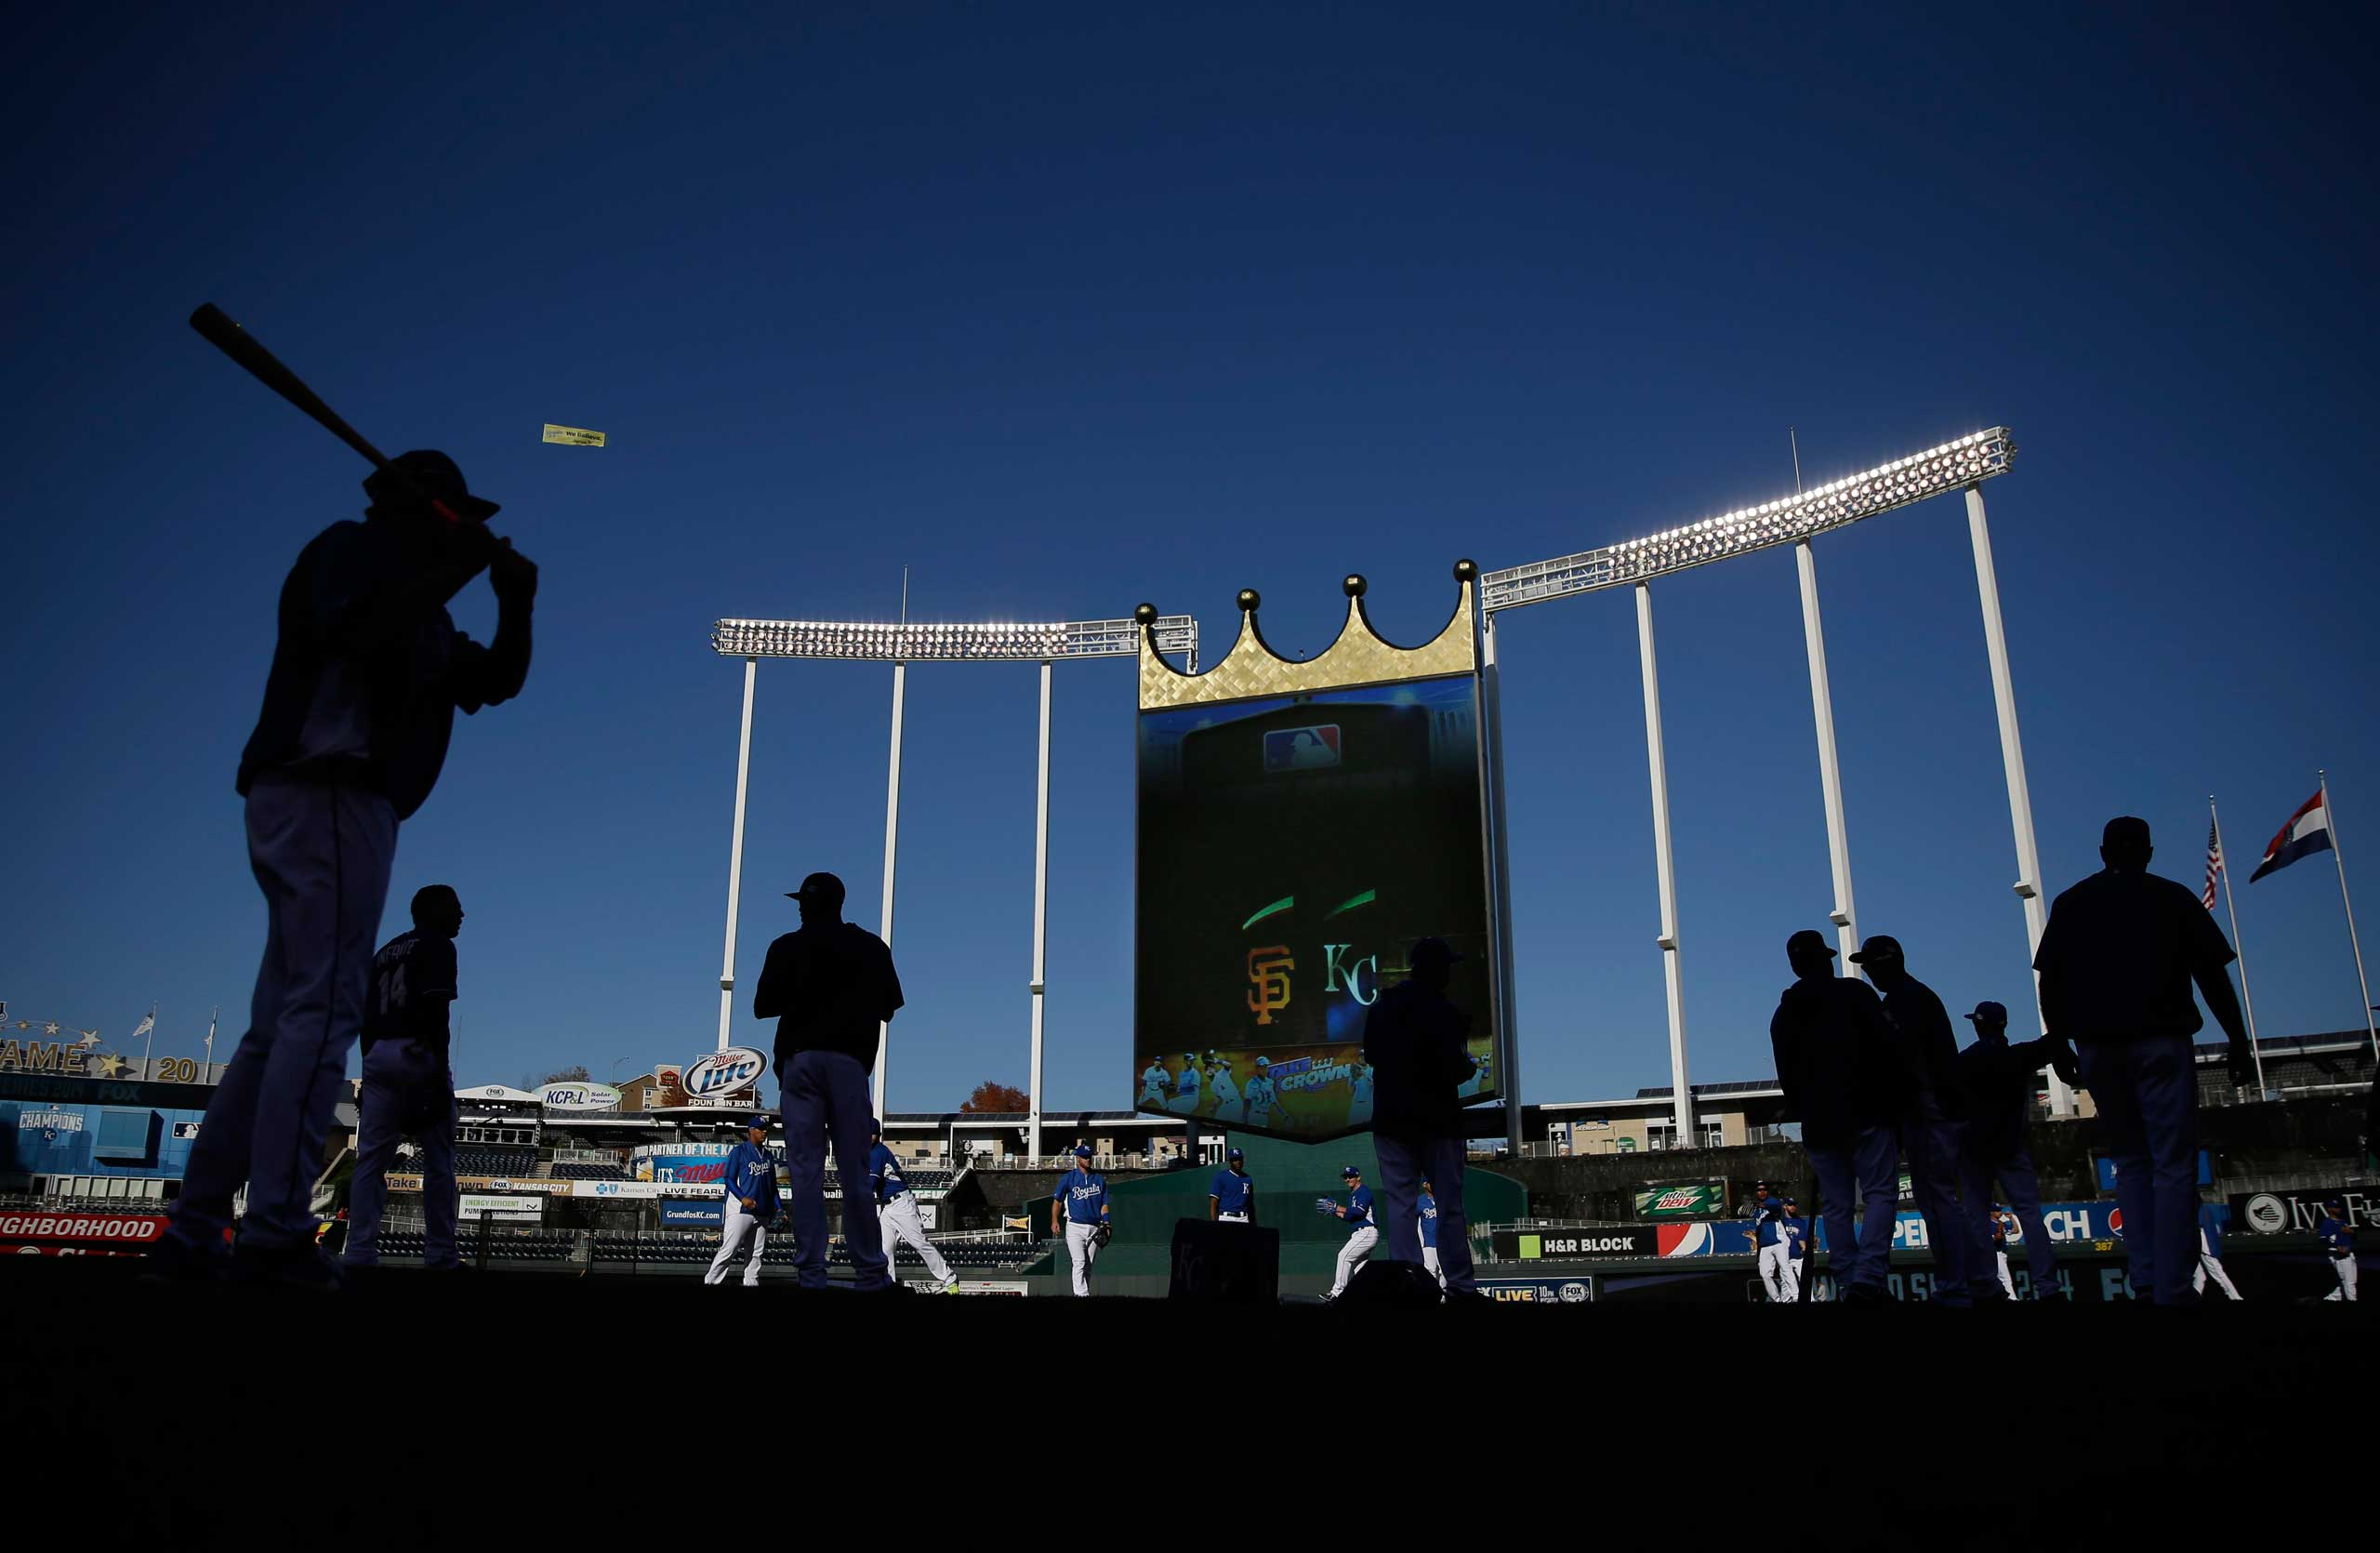 Oct. 21, 2014. Kansas City Royals warm up before Game 1 of baseball's World Series against the San Francisco Giants Tuesday in Kansas City, Mo.